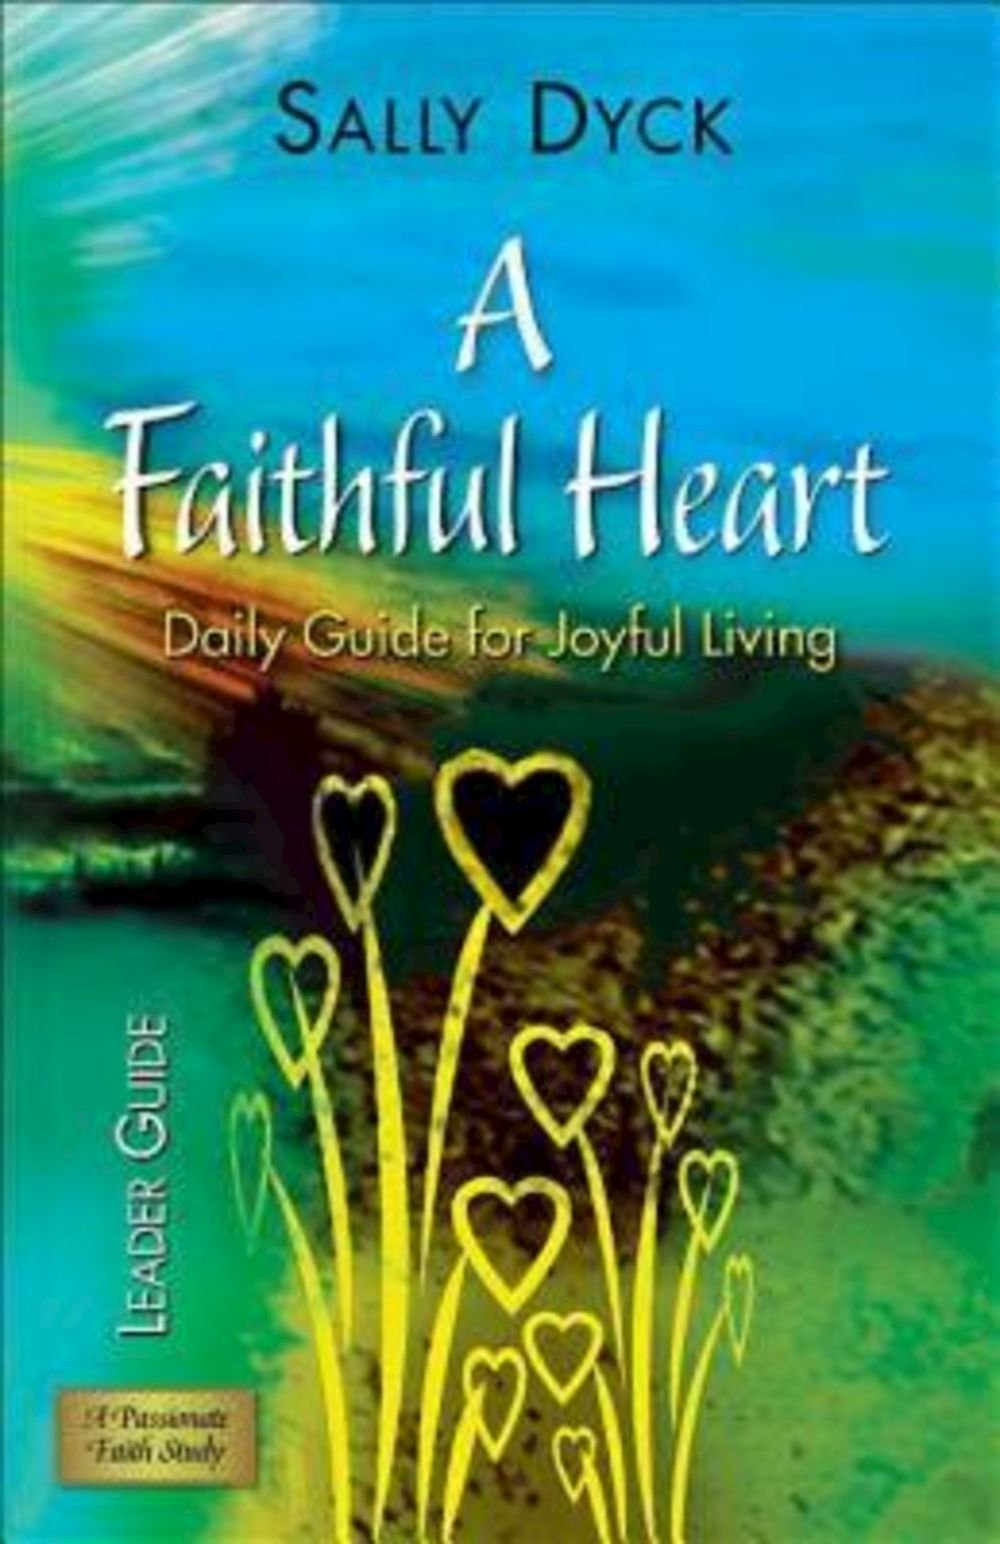 A faithful heart leader guide daily guide for joyful living sally a faithful heart leader guide daily guide for joyful living sally dyck 9781426710834 amazon books fandeluxe Image collections